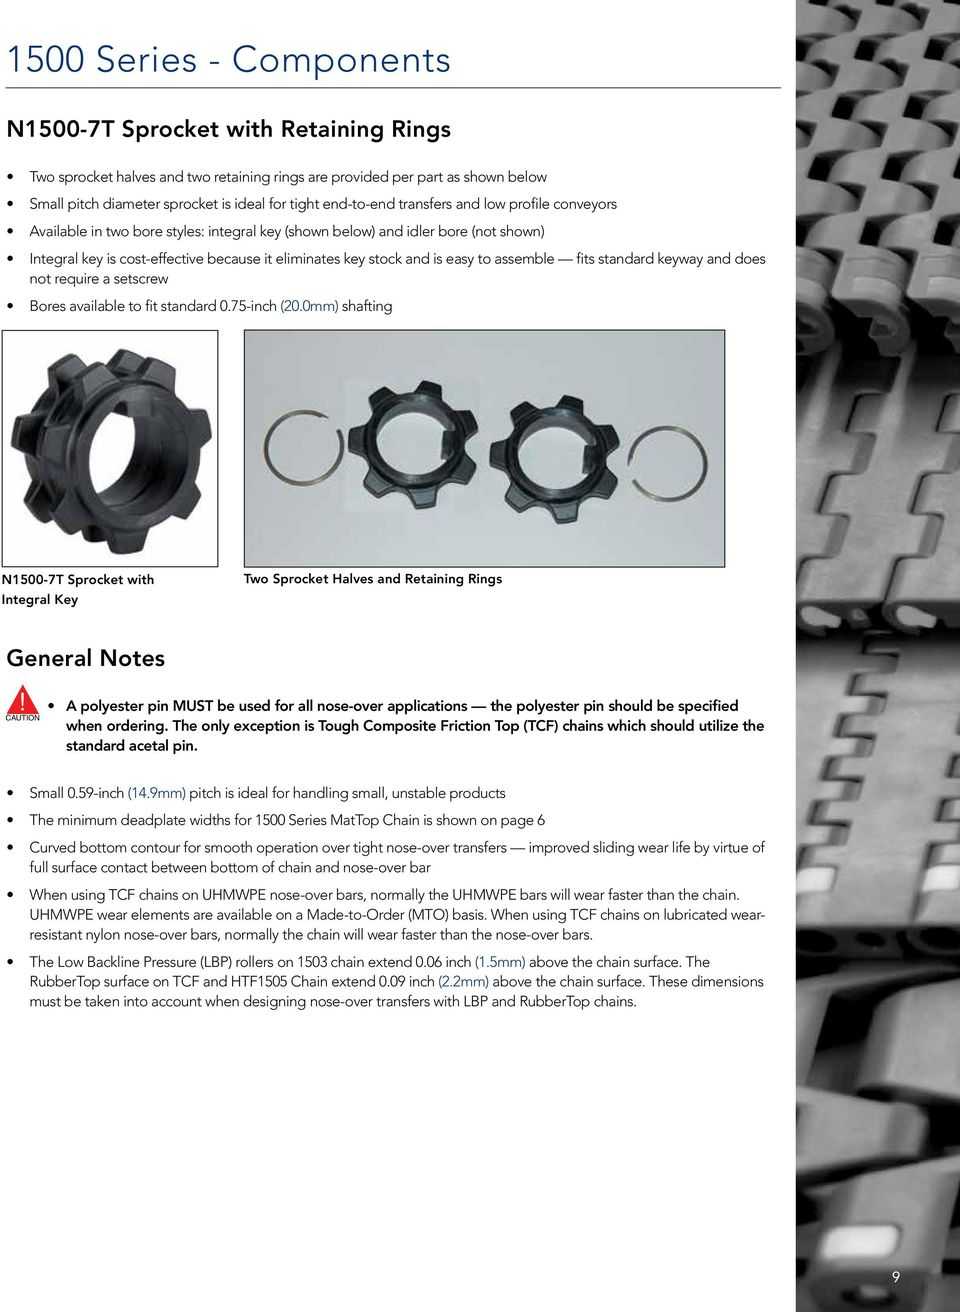 is easy to assemble fits standard keyway and does not require a setscrew Bores available to fit standard 0.75-inch (20.